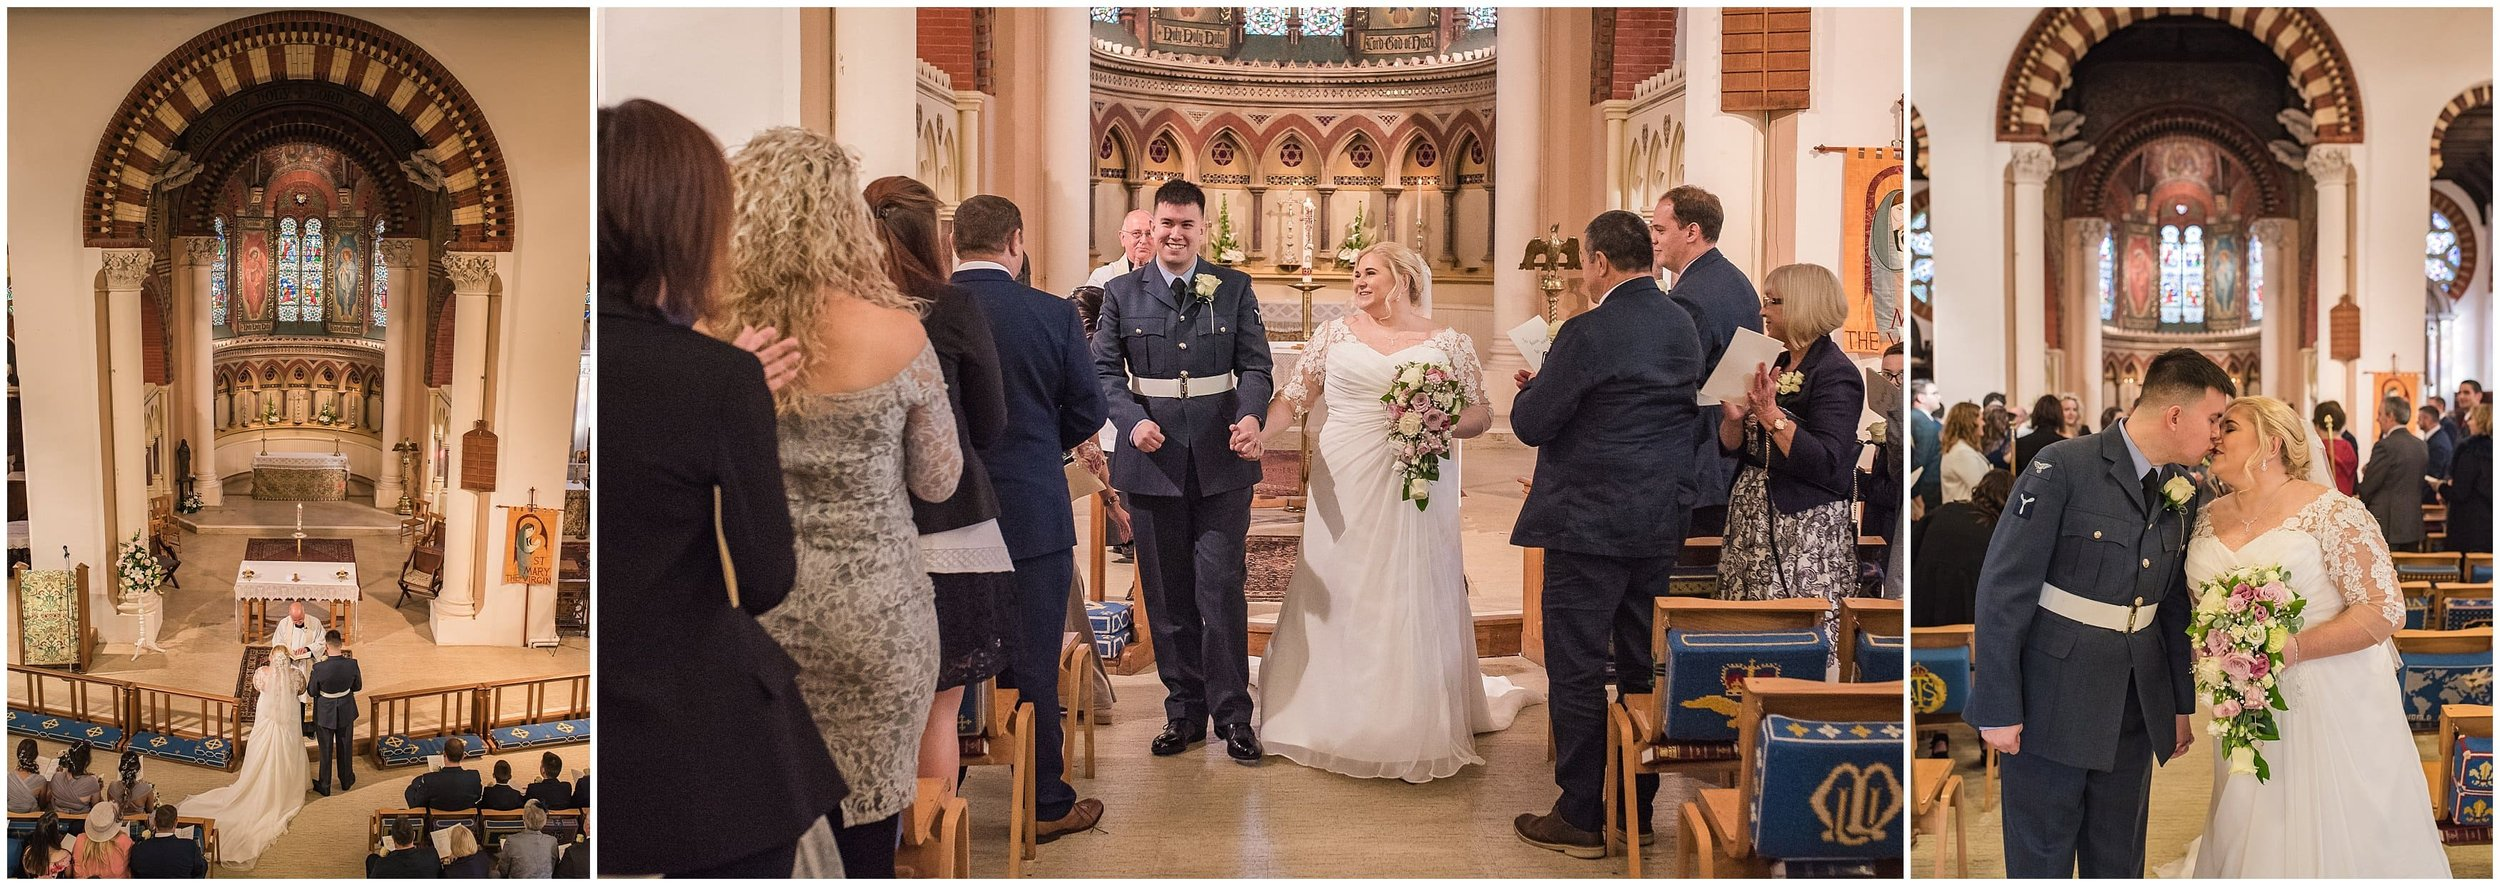 Newly weds walking down the aisle at St Marys Church in Sunbury Surrey